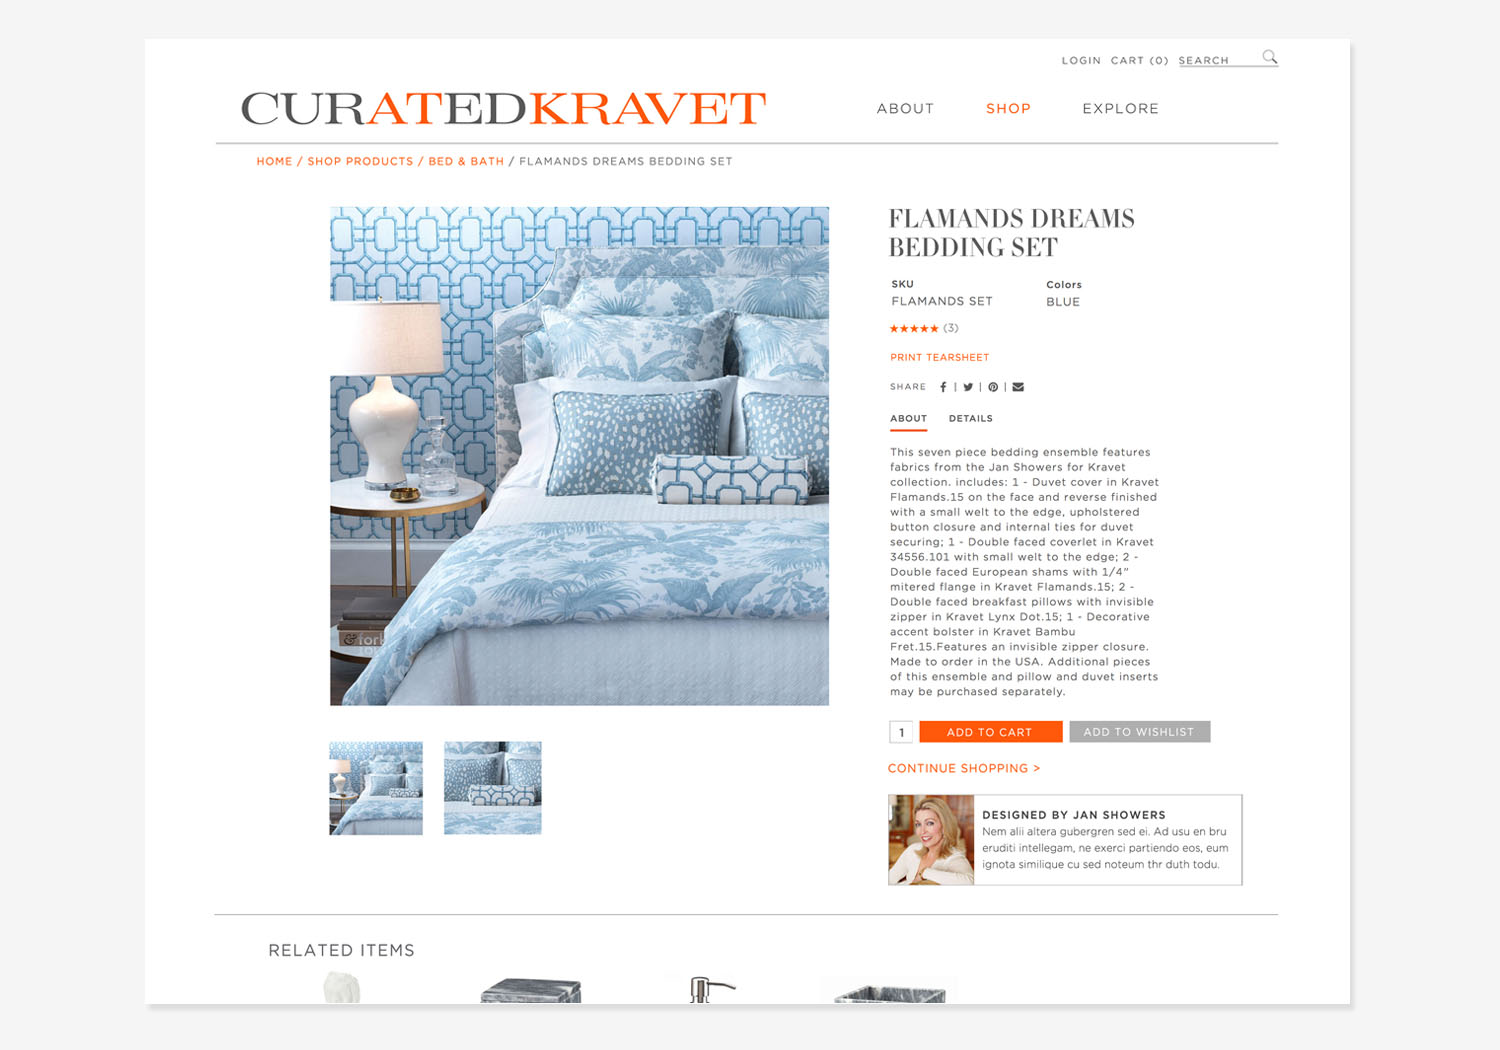 curatedkravet_products_tight.jpg